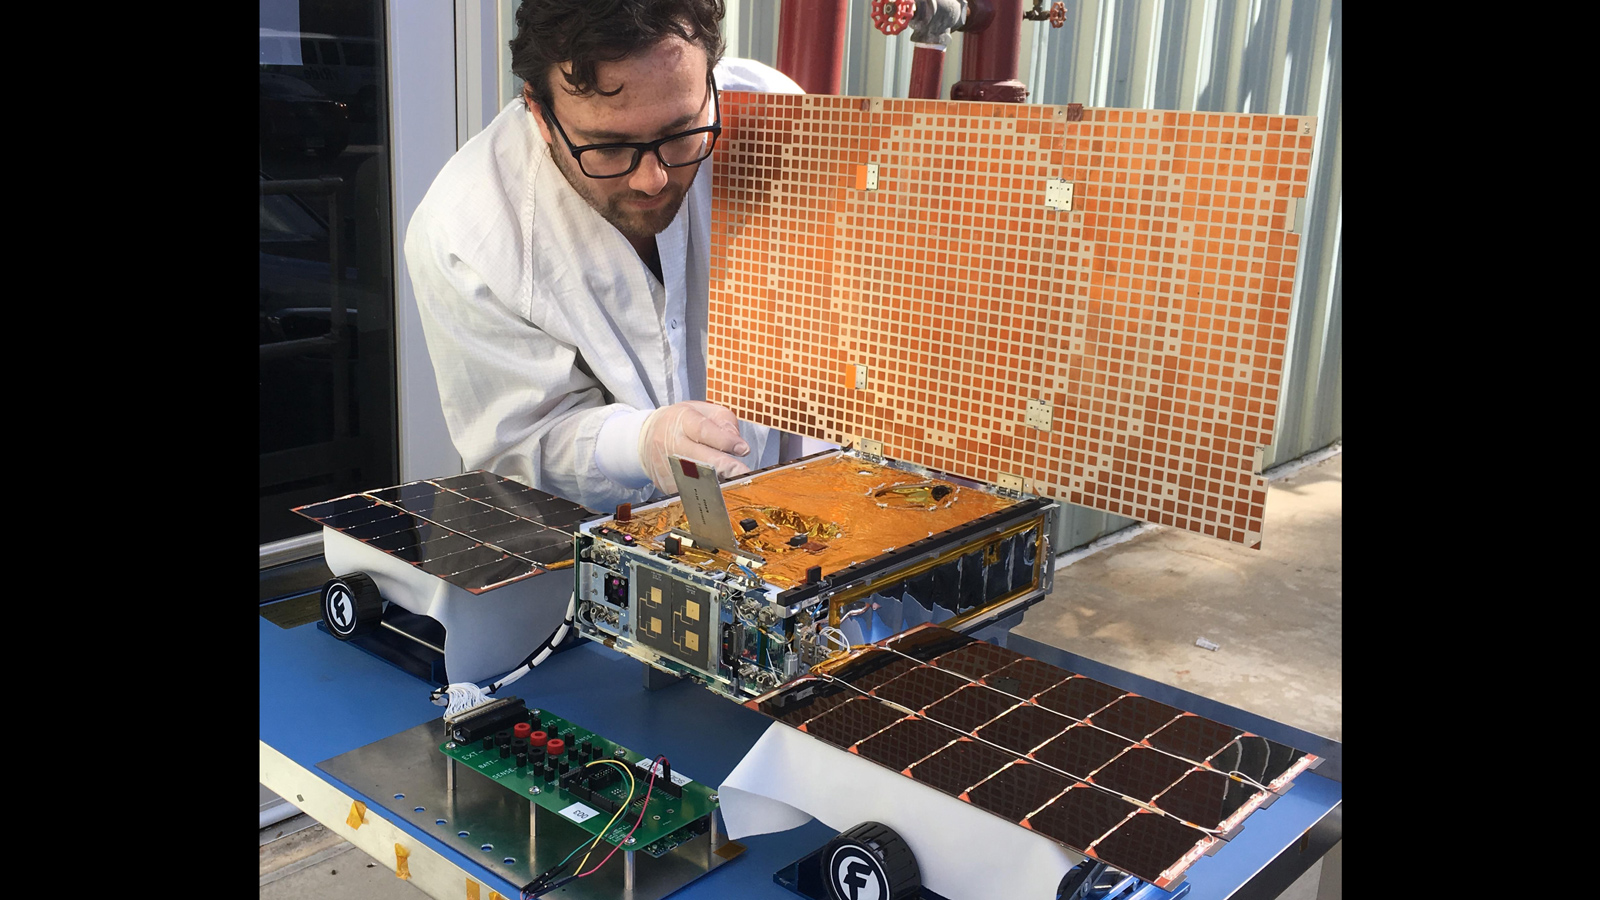 slide 5 - Engineer Joel Steinkraus tests the solar arrays on one of the Mars Cube One